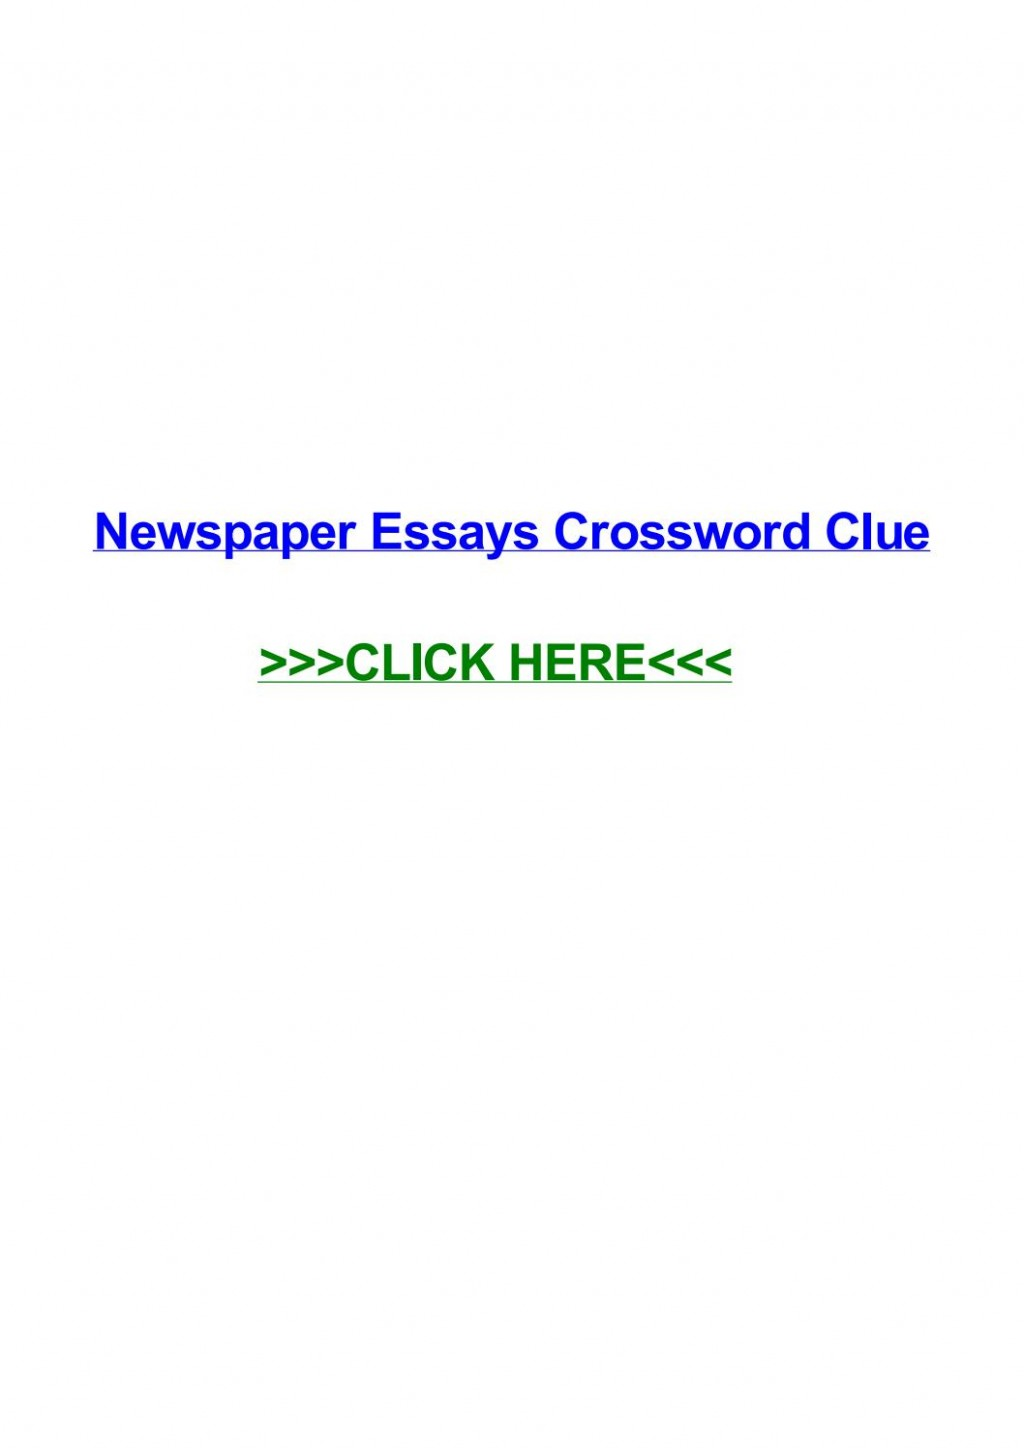 016 Political Essay Crossword Page 1 Dreaded Clue Large